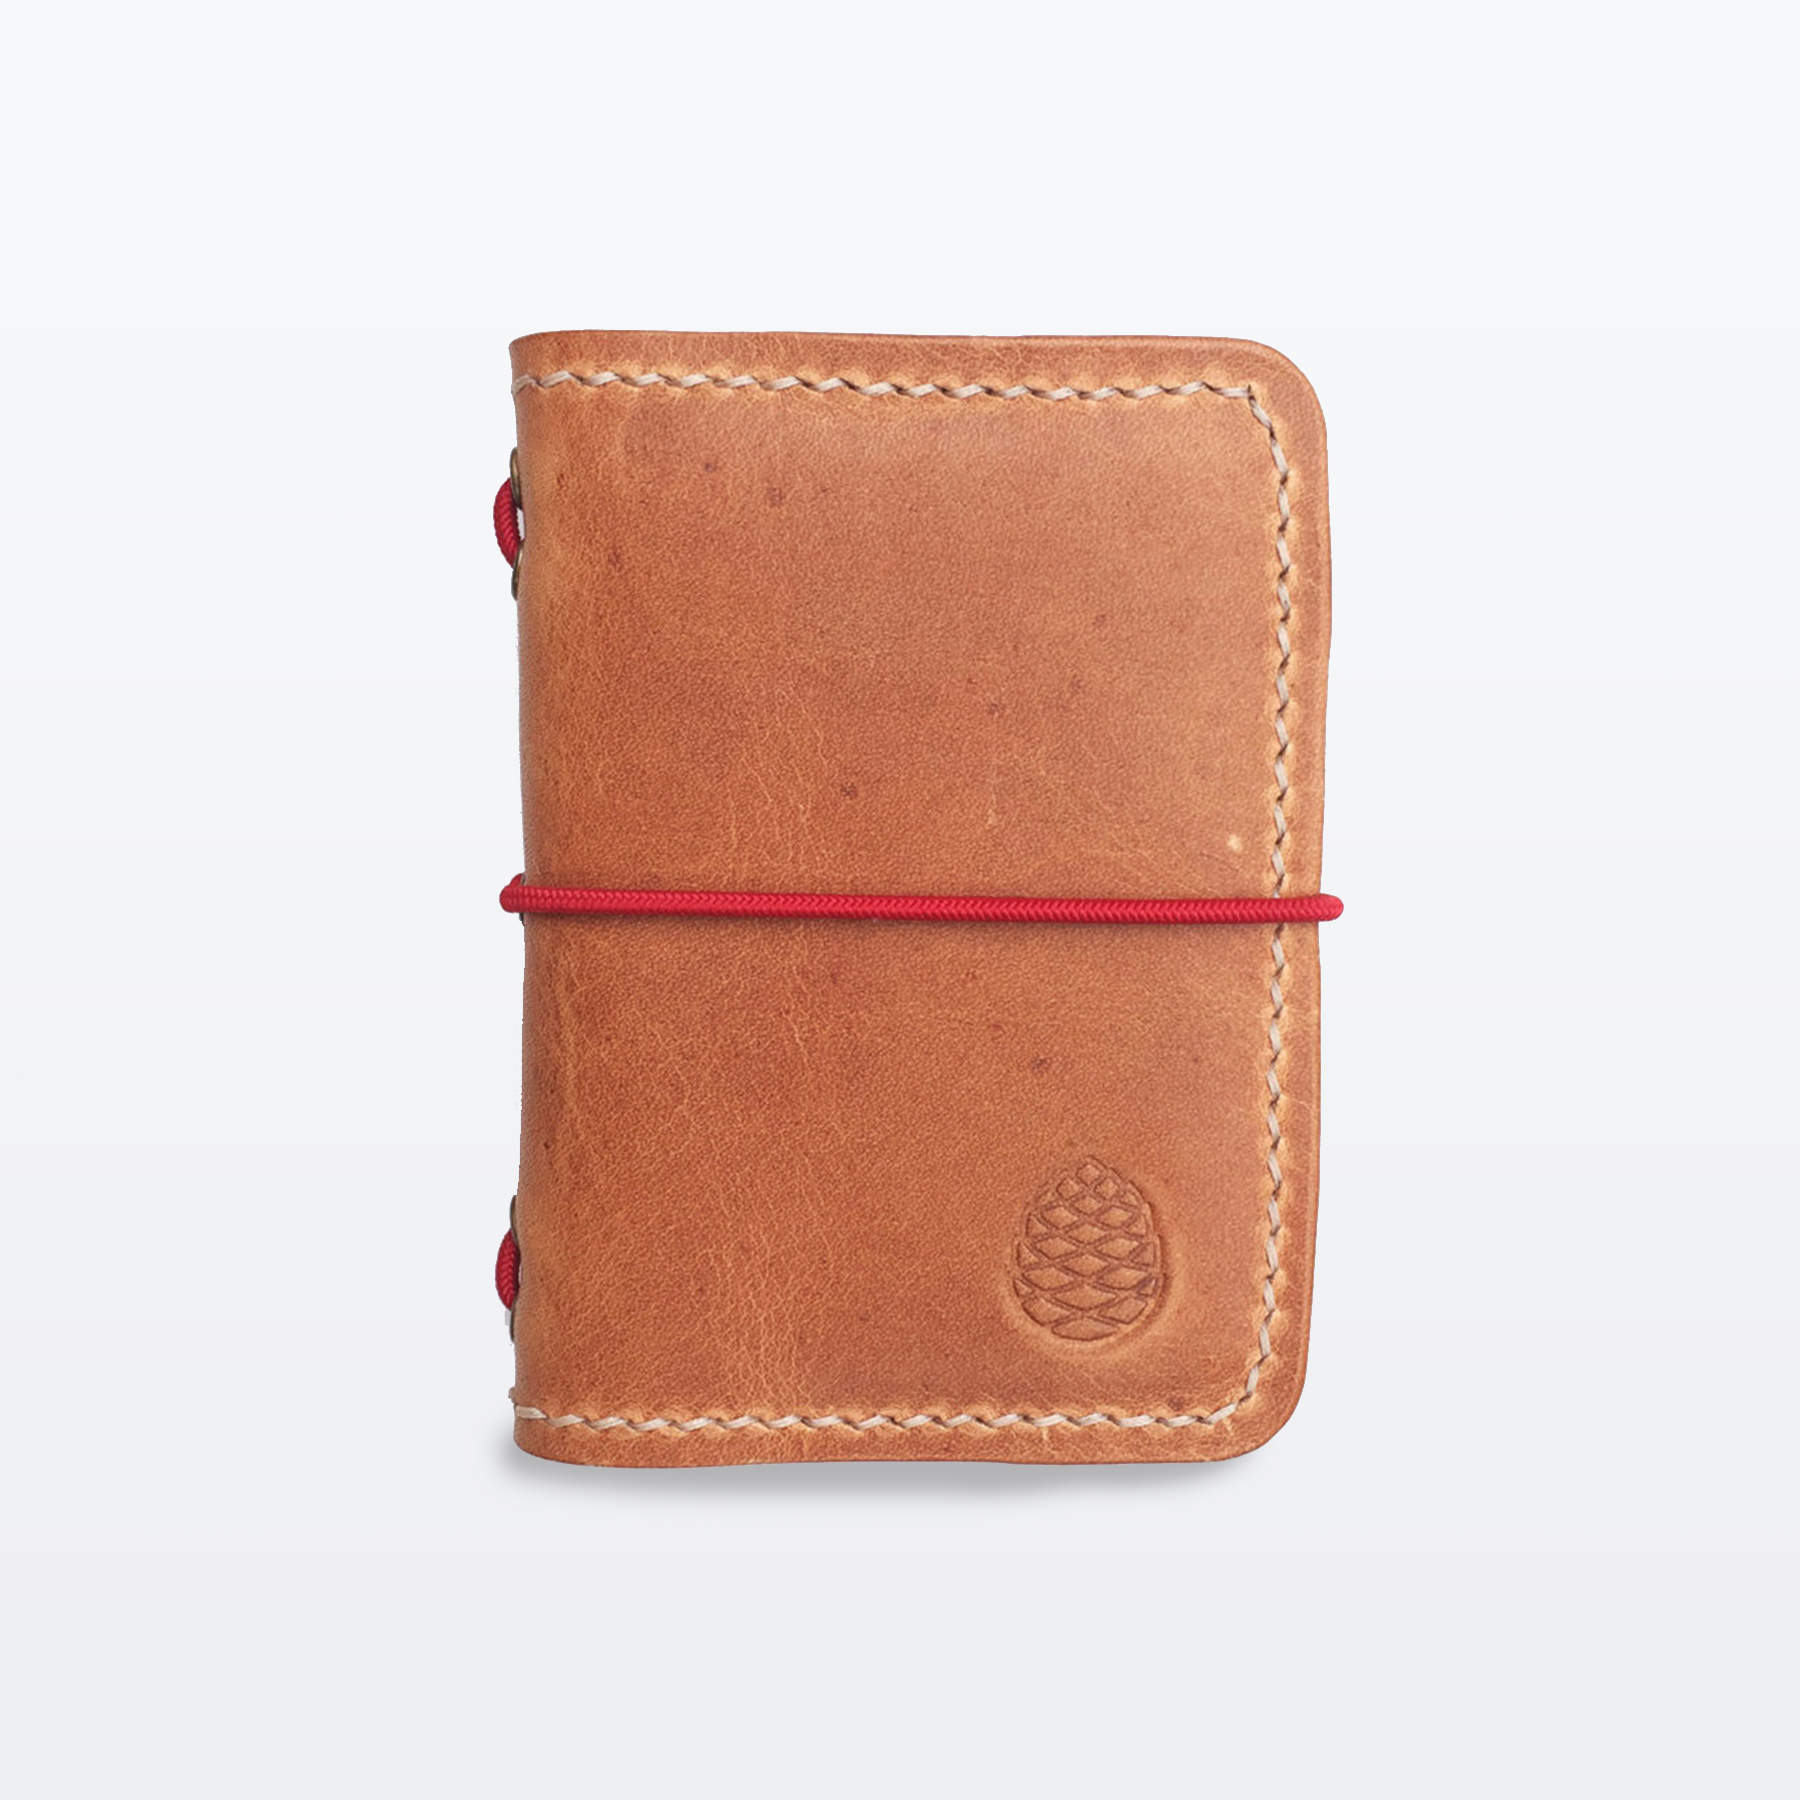 Tan Leather card holder wallet The Level Collective x flat leather.jpg